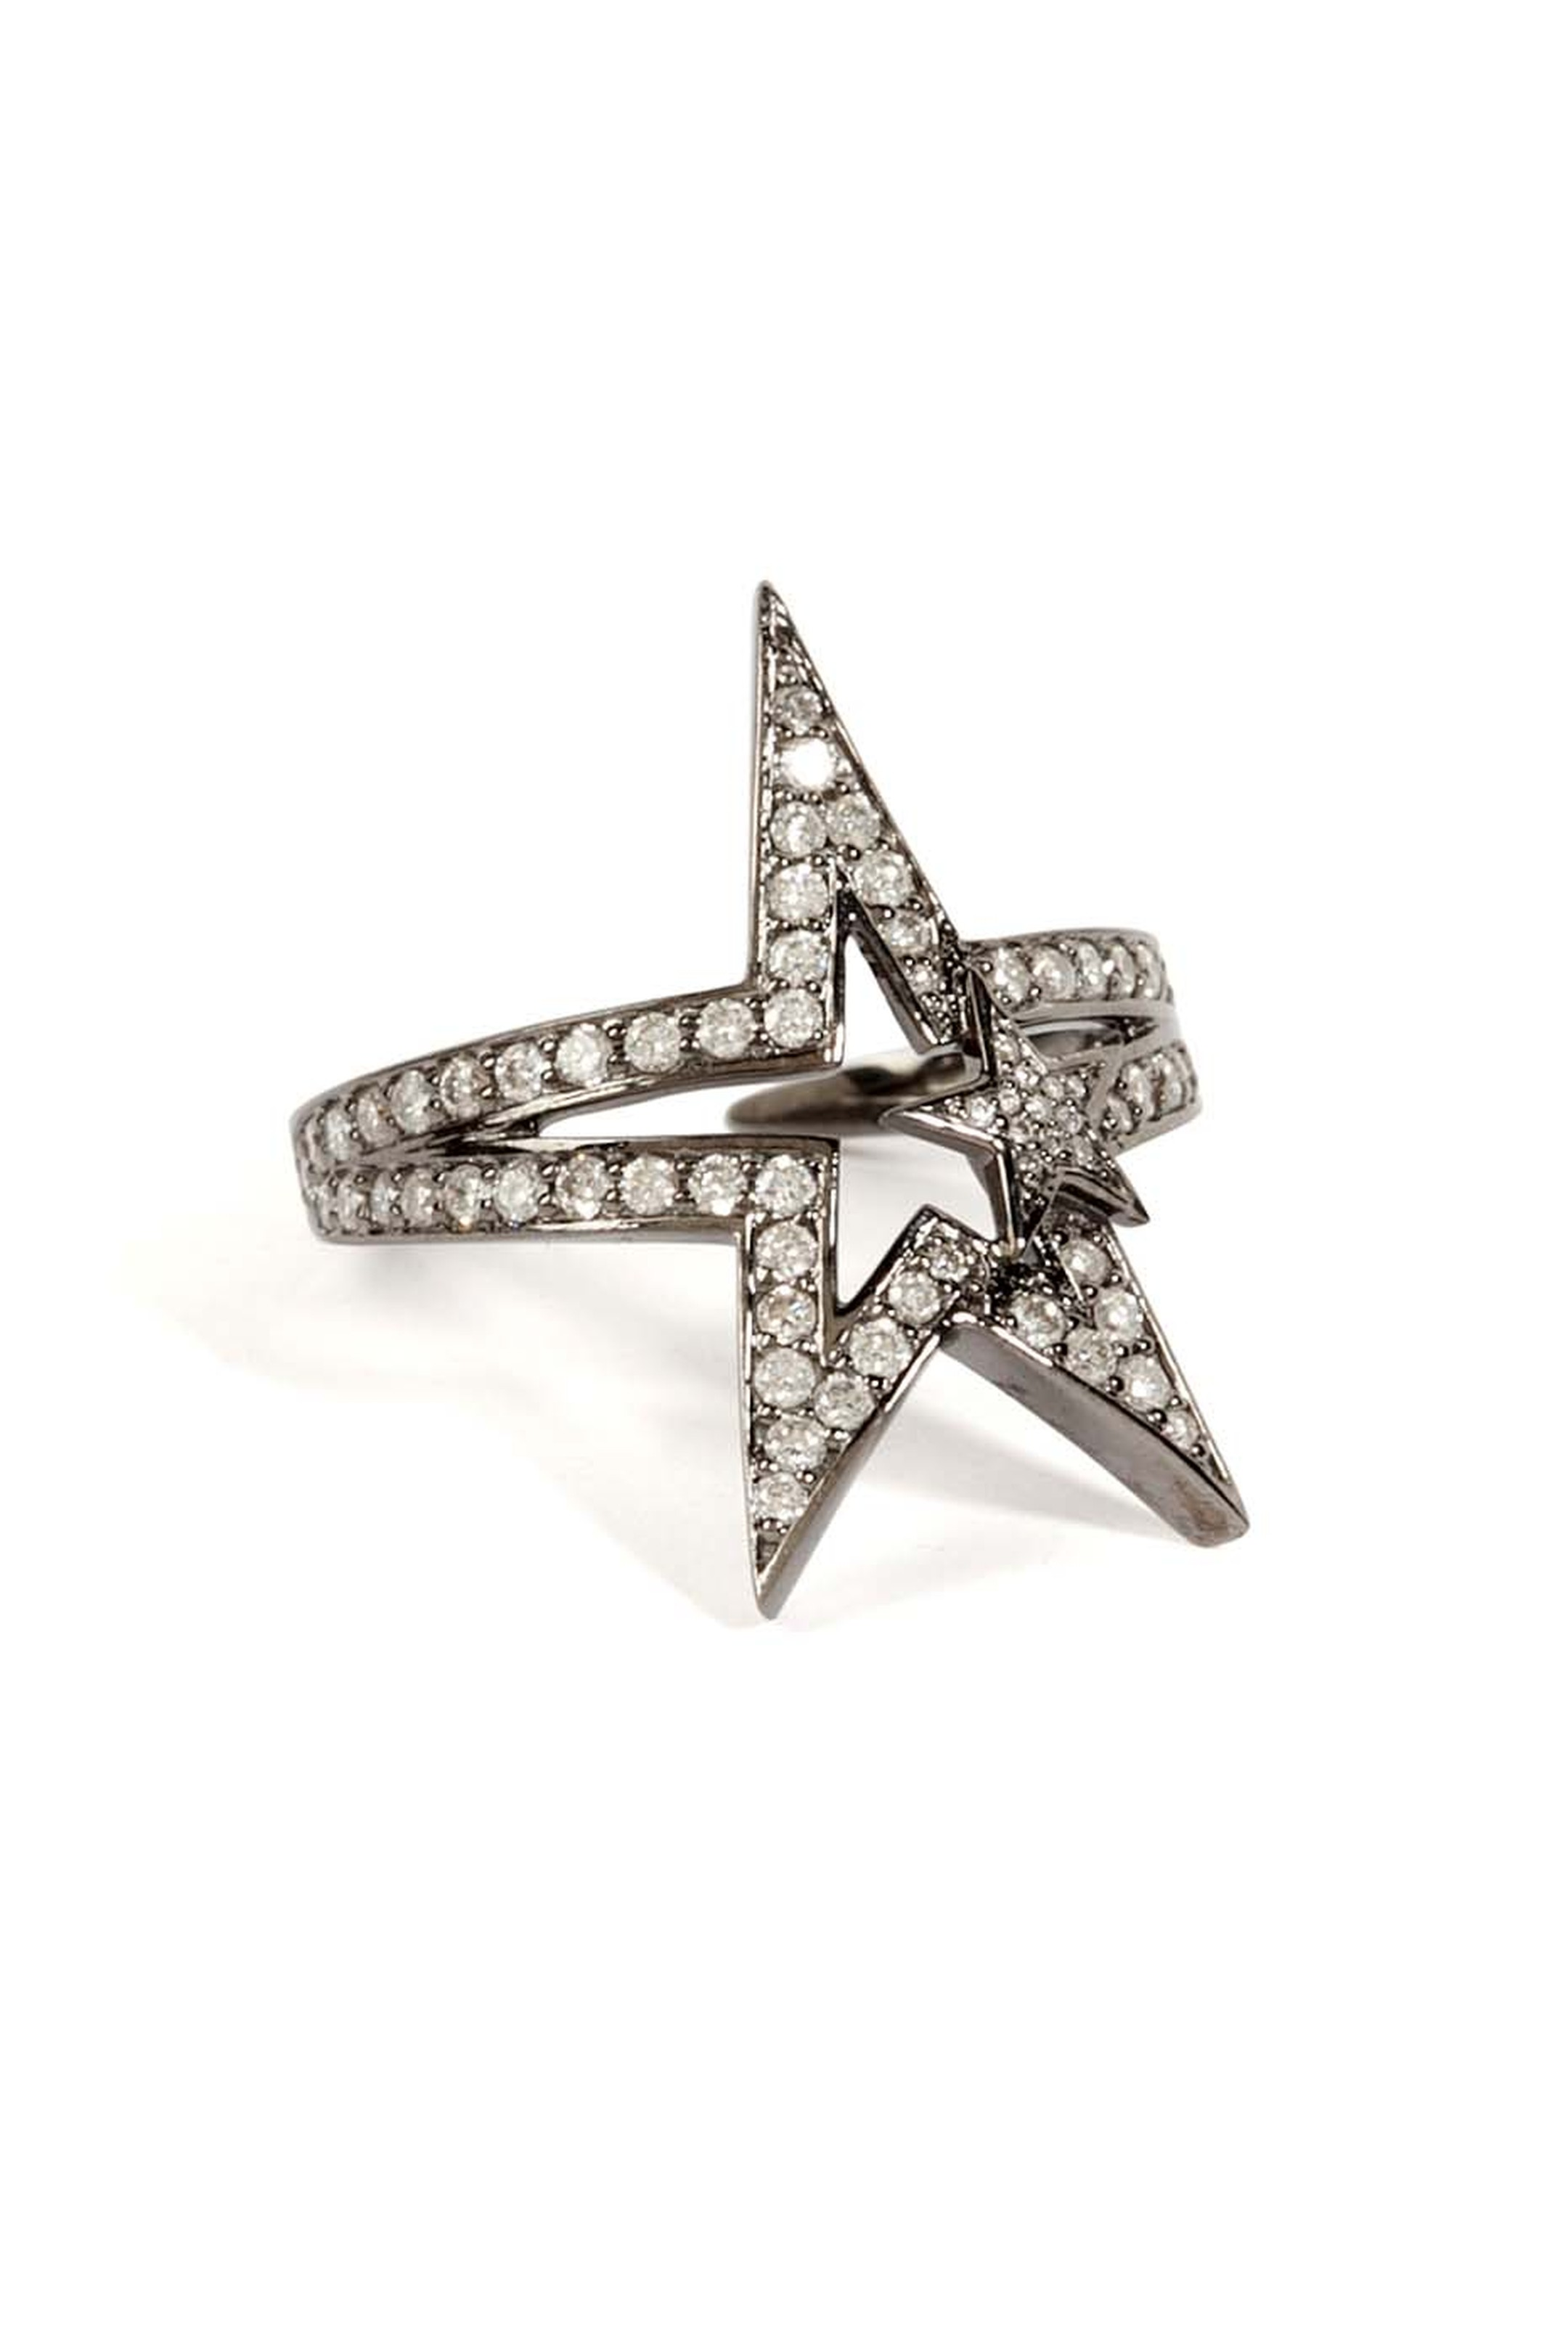 Nikos Koulis black rhodium Star ring with diamonds.